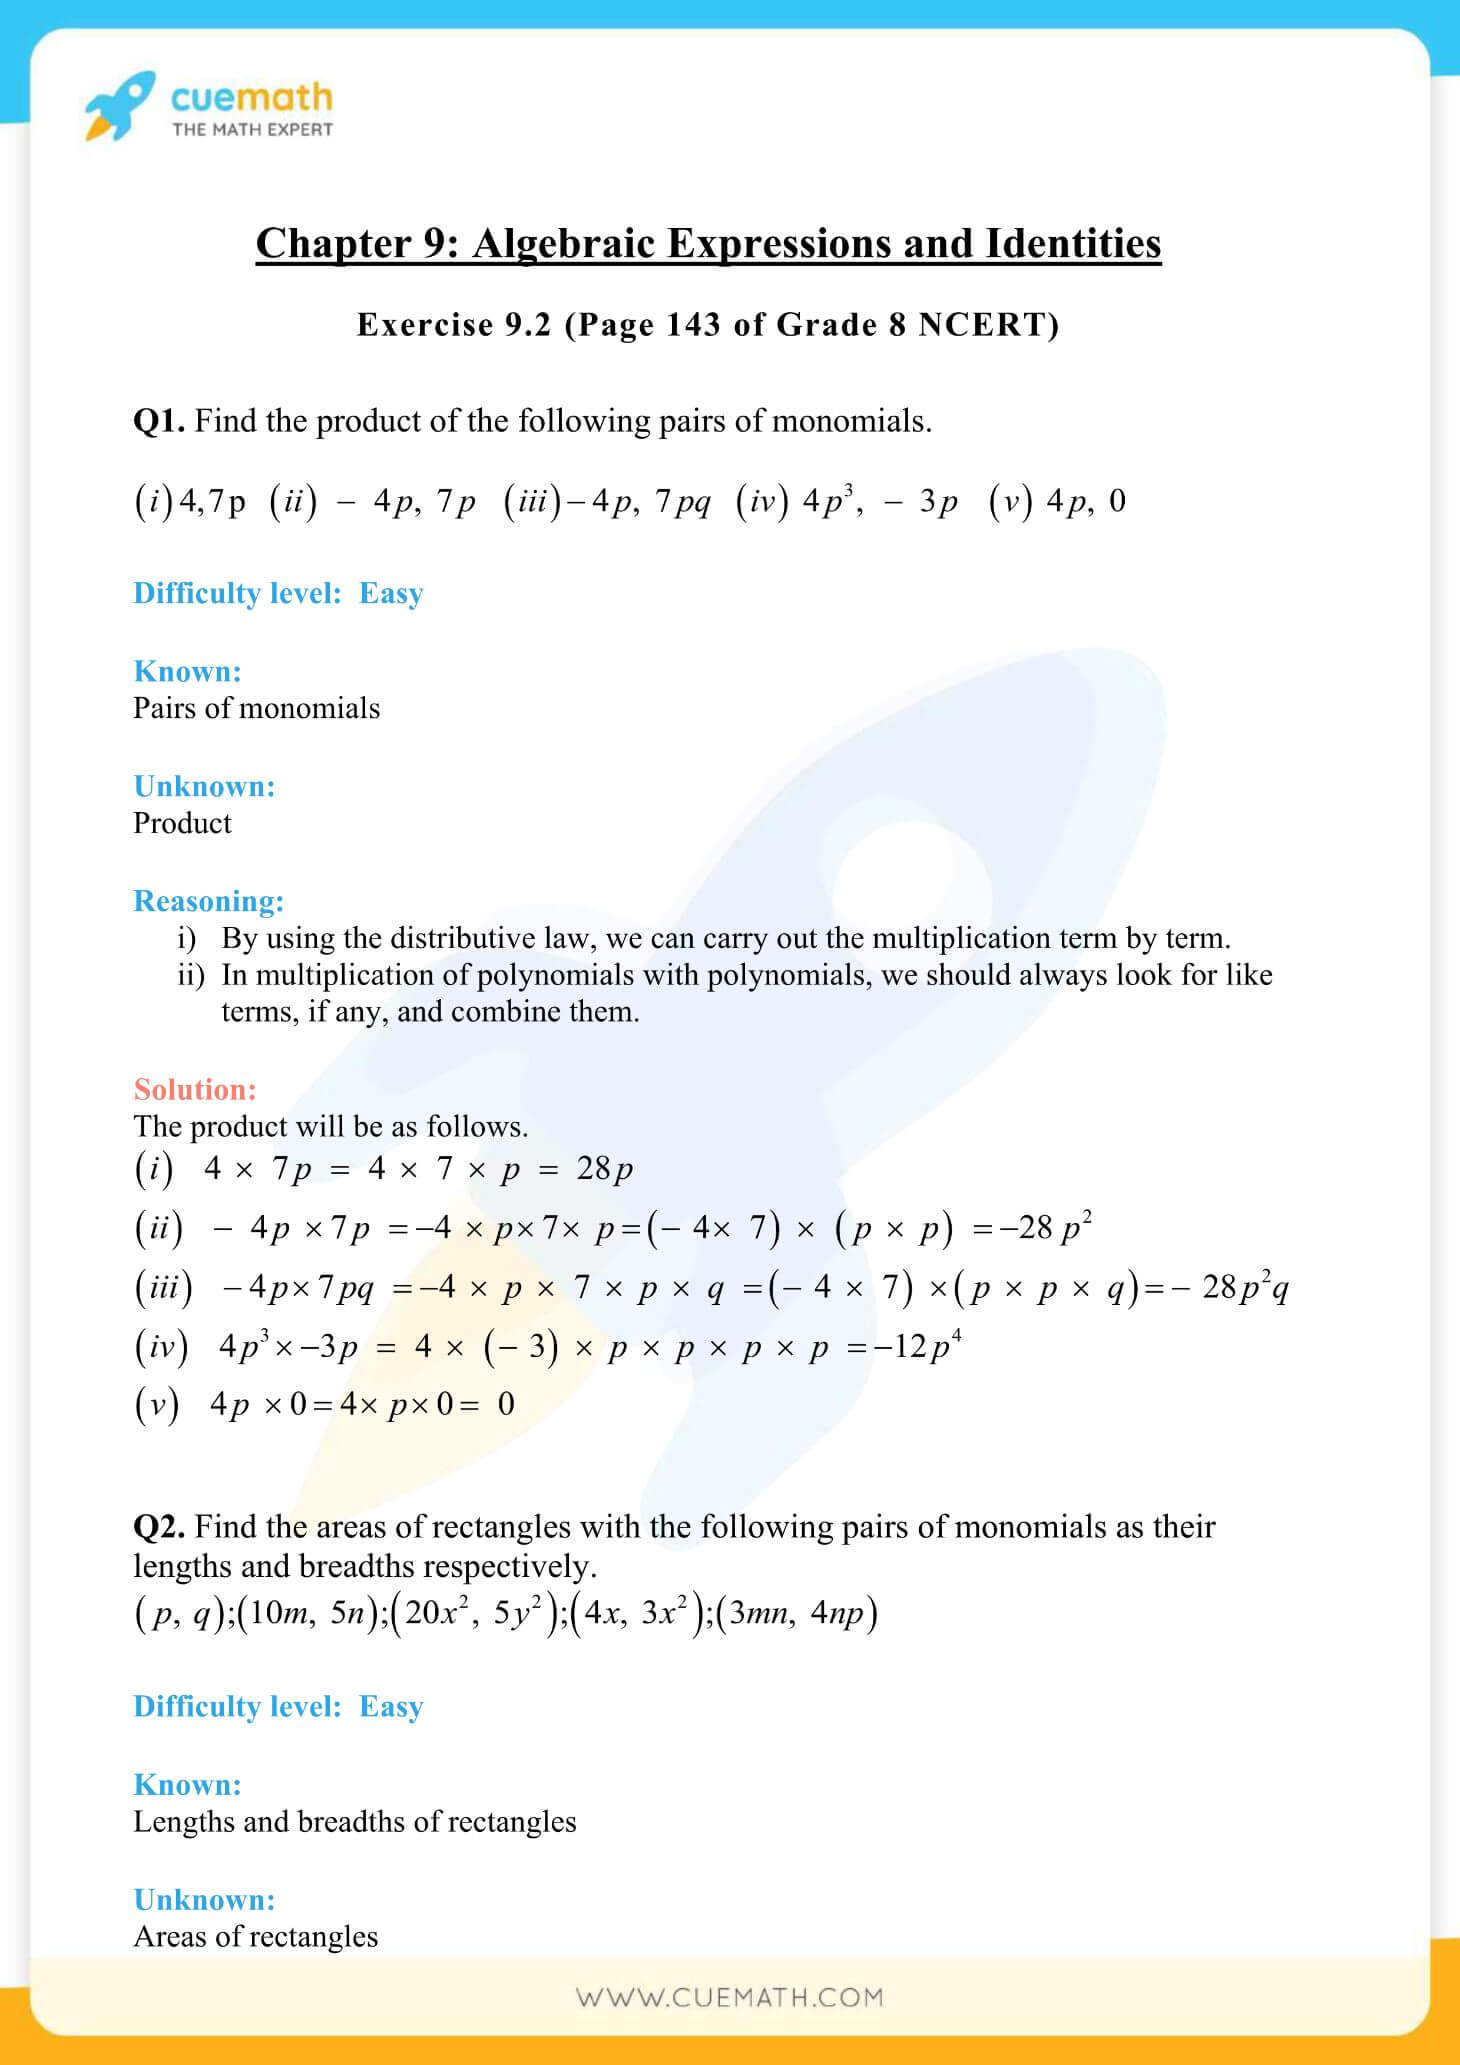 NCERT Solutions Class 8 Math Chapter 9 Algebraic Expressions And Identities 6